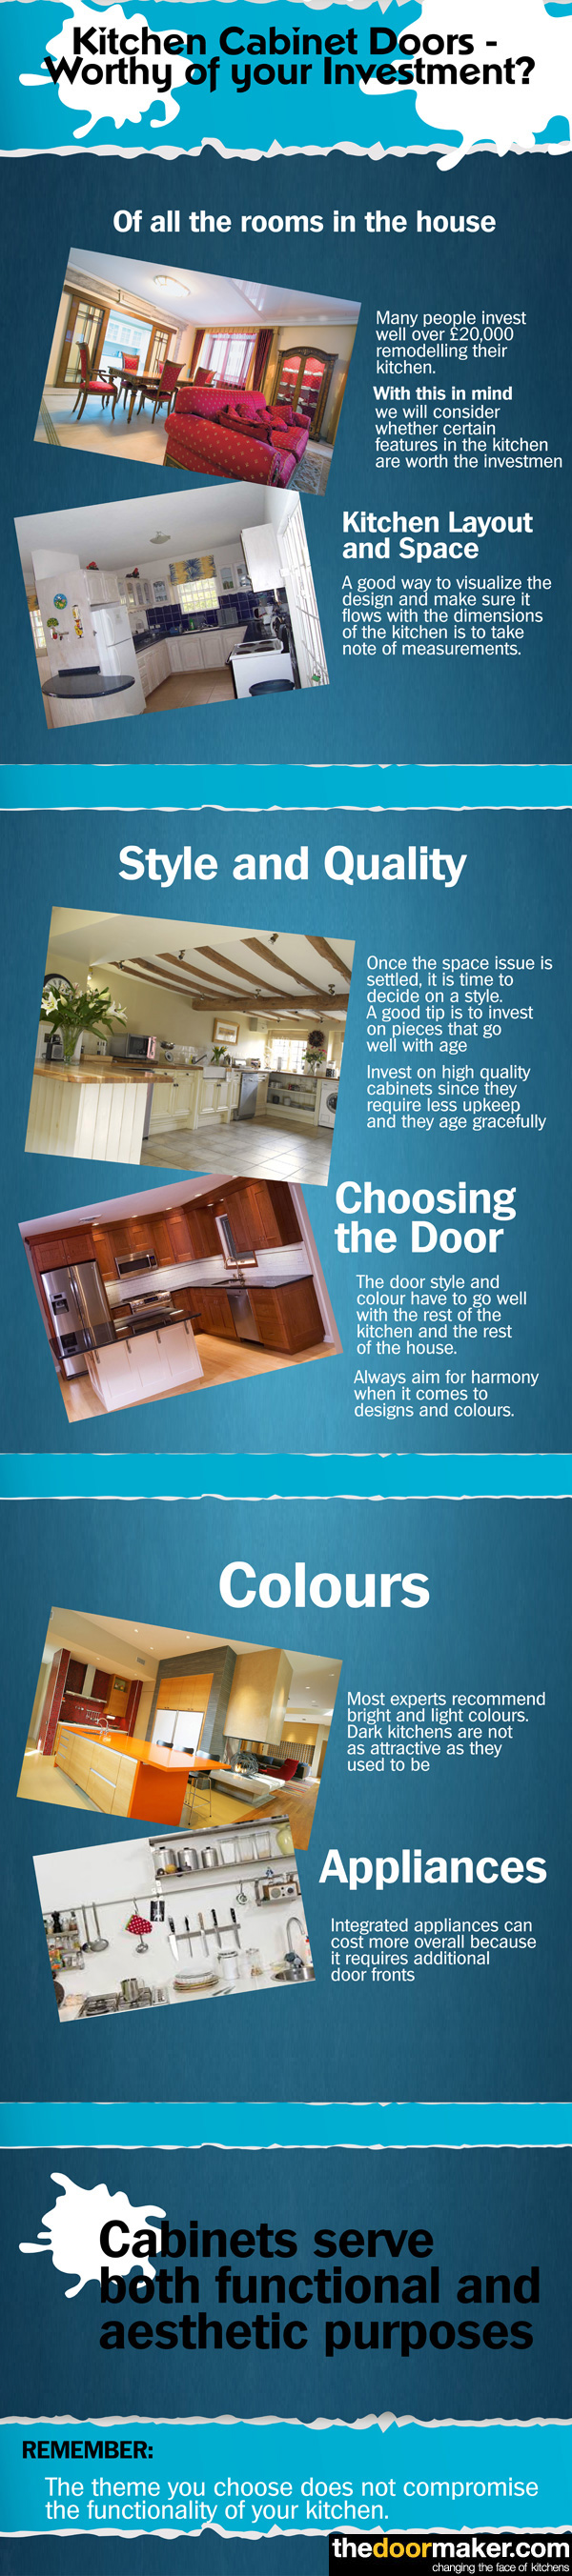 Kitchen Cabinet Doors - Worthy of your Investment - TheDoormaker